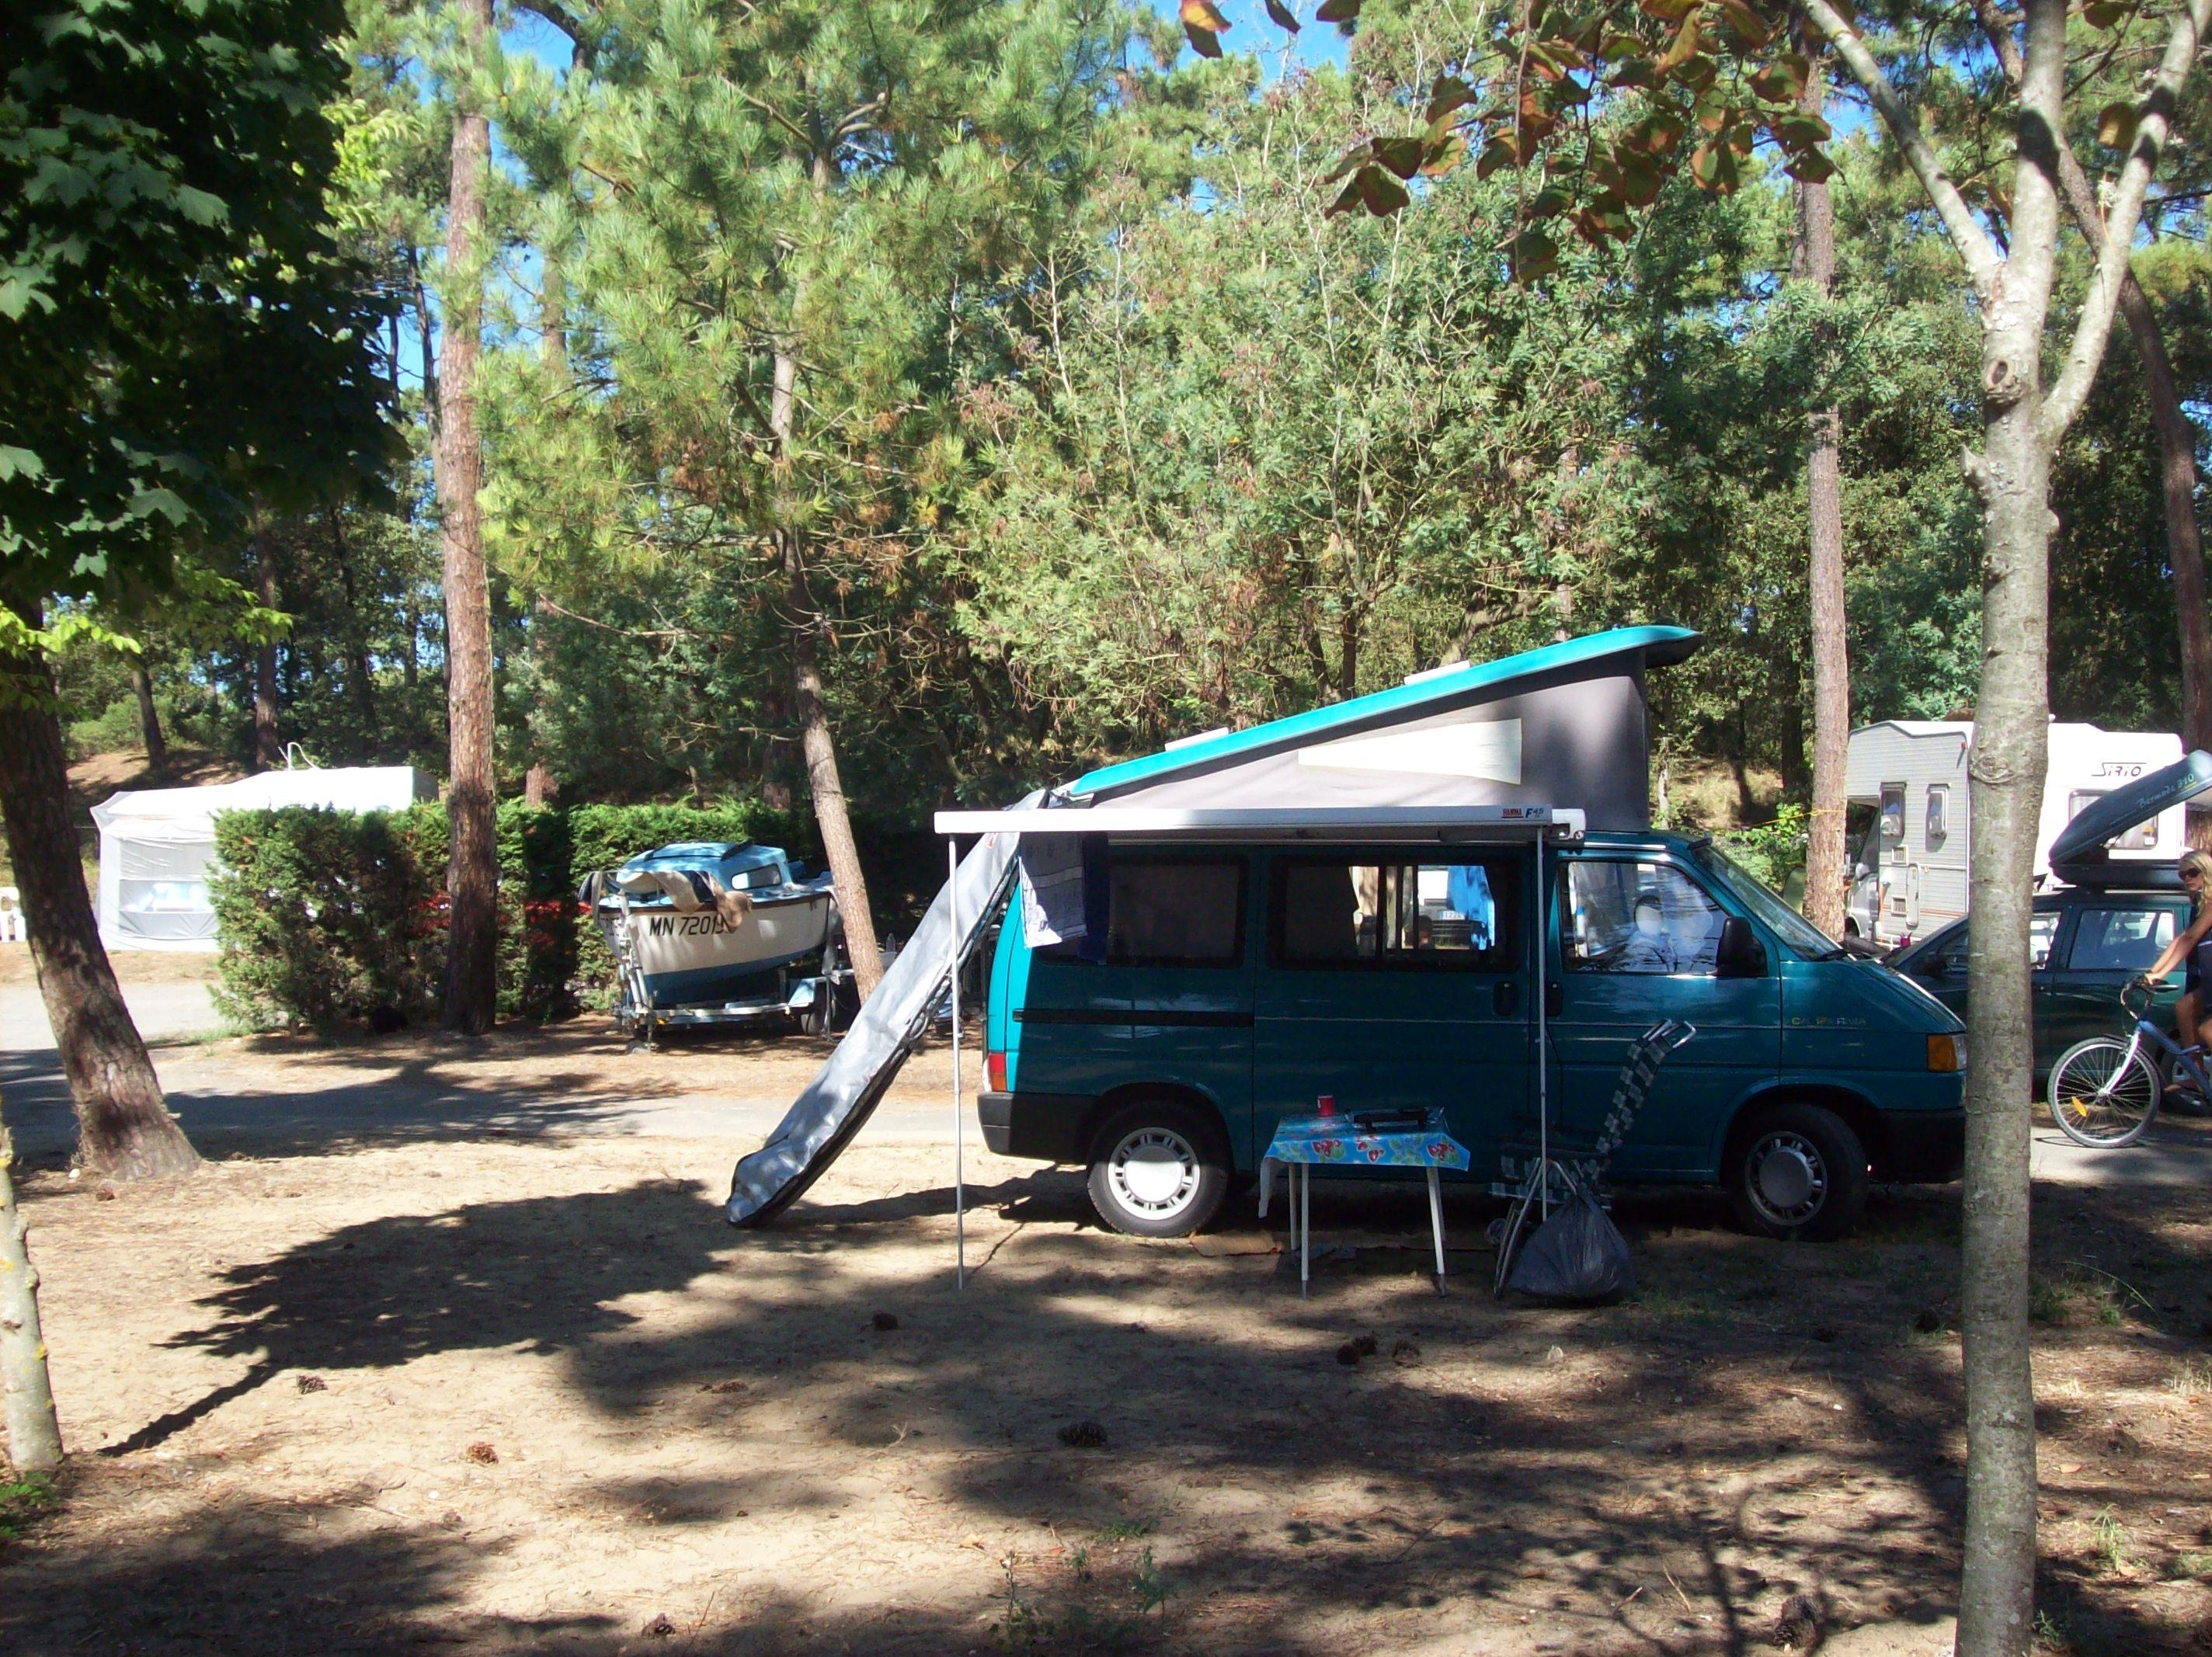 Emplacement - Emplacement Branché - Camping-Club Les Pins